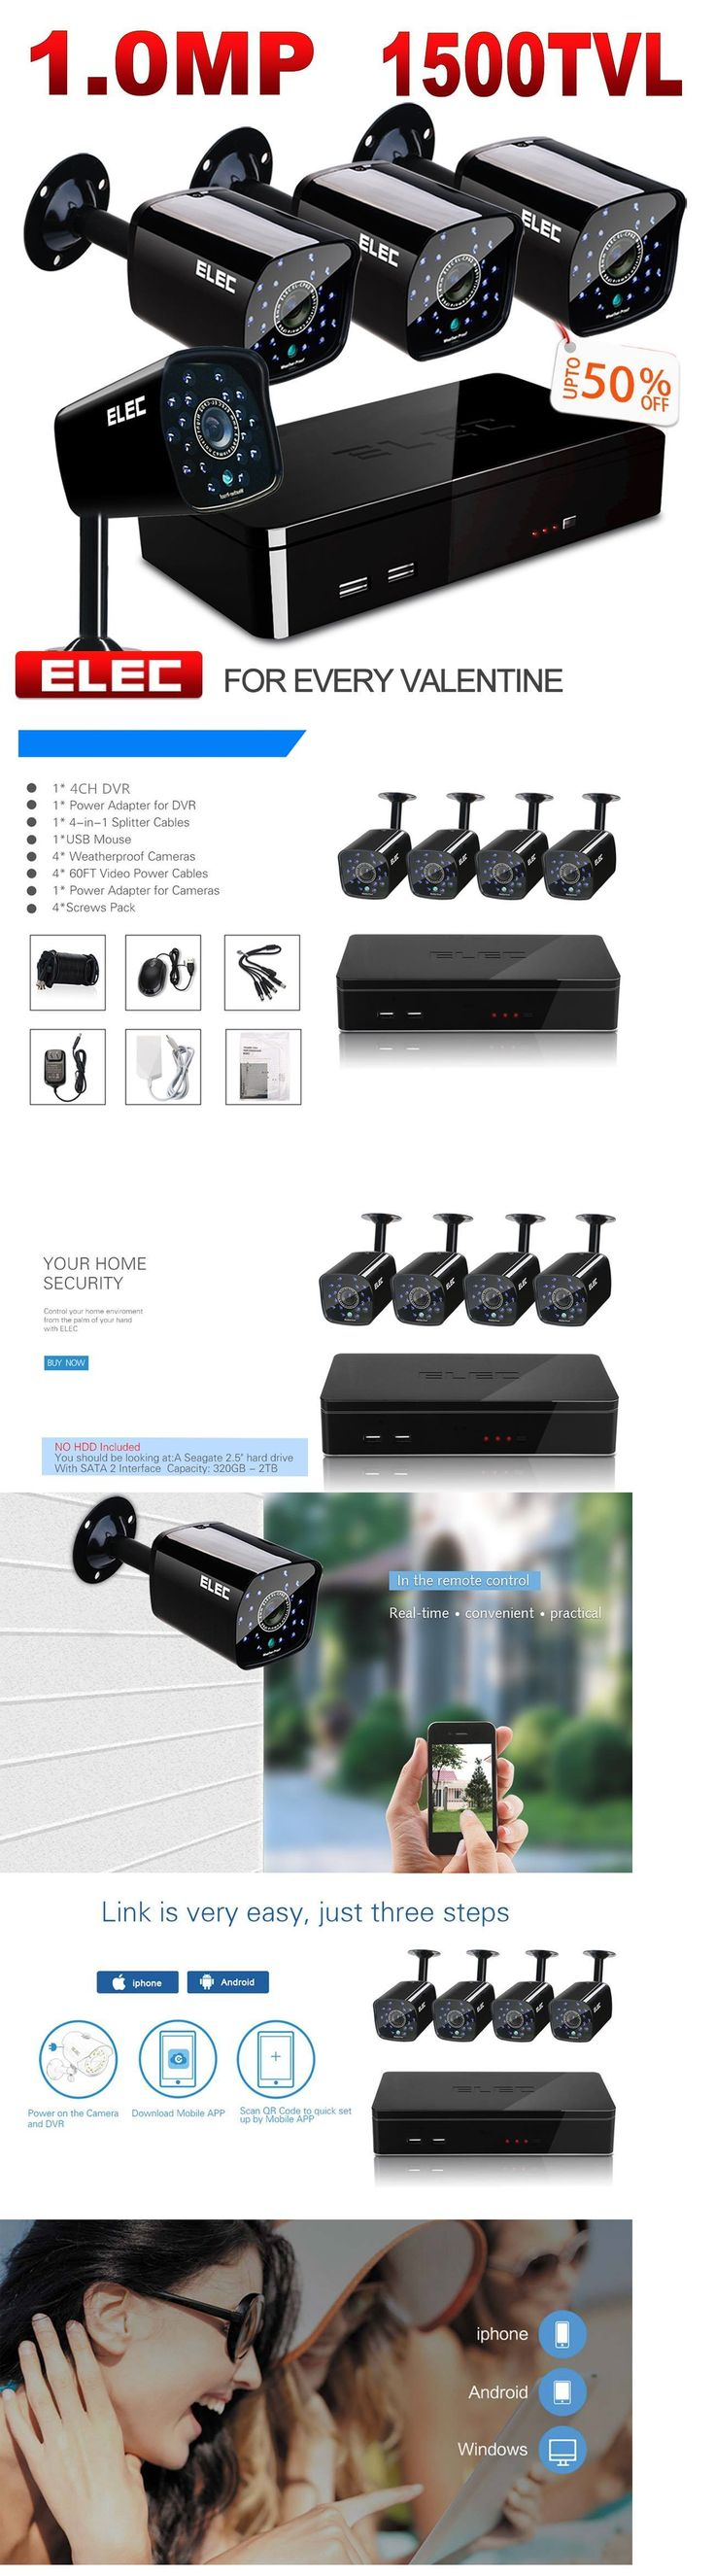 Surveillance Security Systems: Elec 8Ch Channel 960H Hdmi Dvr Hd 1500Tvl Video Home Cctv Security Camera System -> BUY IT NOW ONLY: $66.69 on eBay!